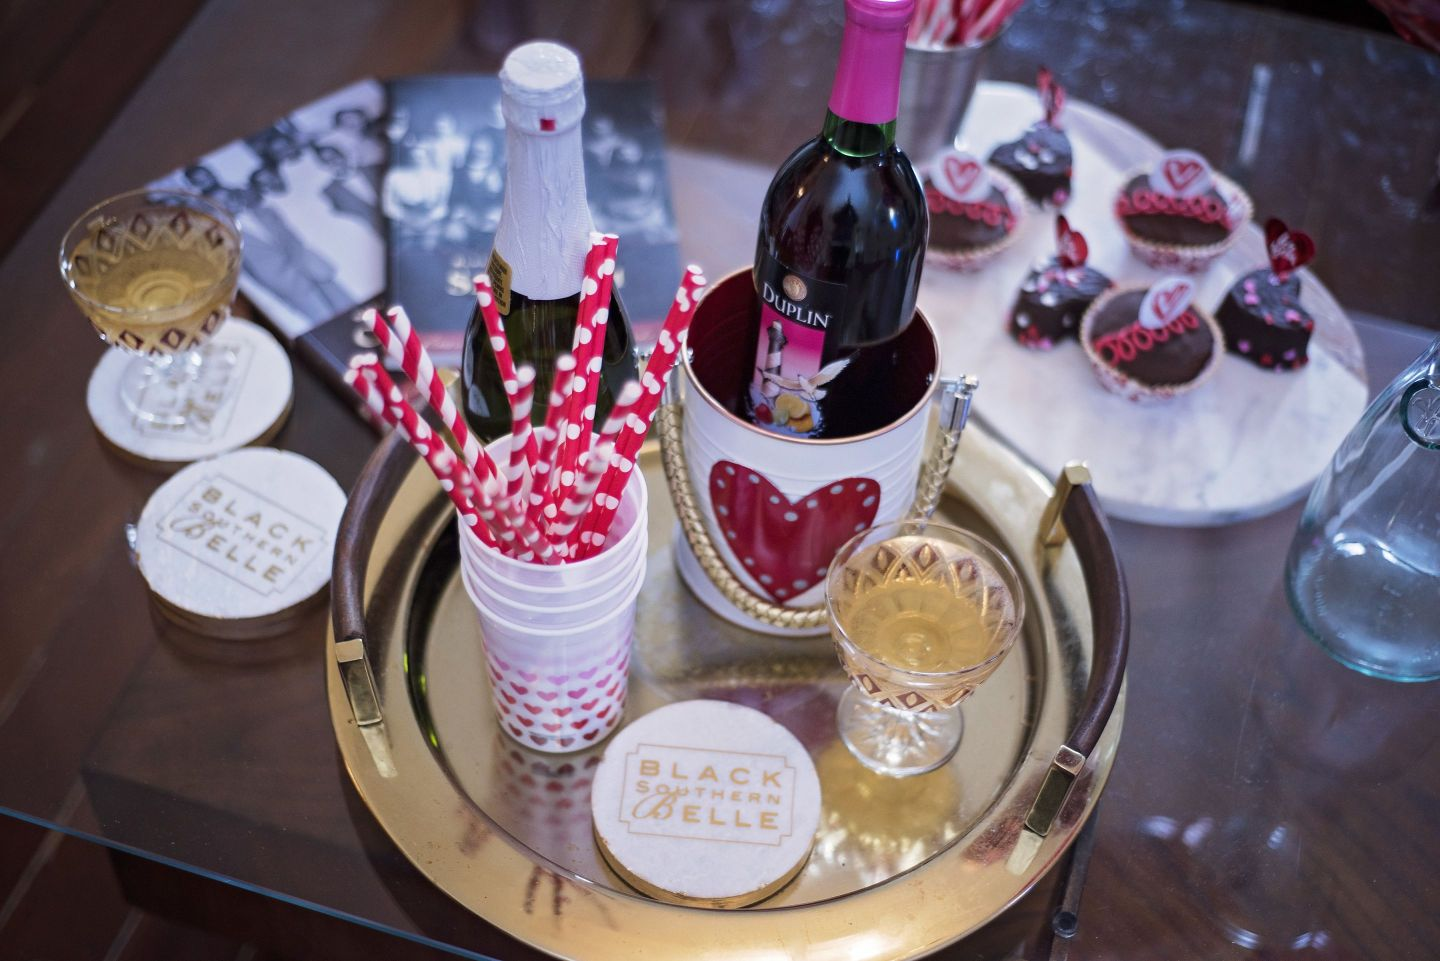 DSC_5386-2-1440x961 Tips for Hosting a Valentine's Day Soiree from Black Southern Belle